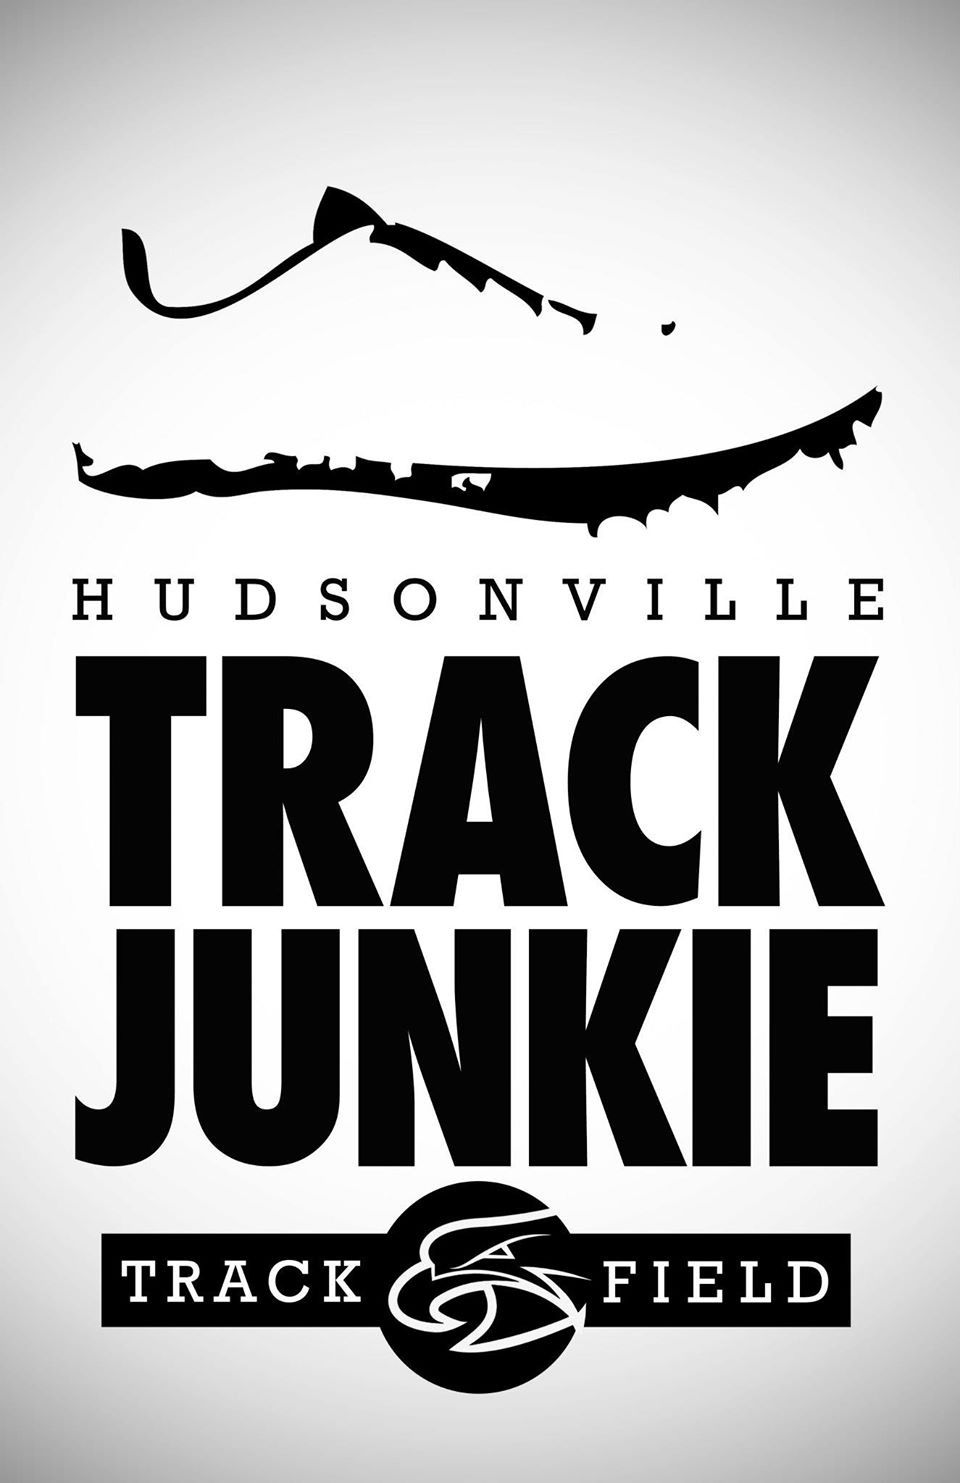 13 Hhs Track Field Logo My Logo Designs Pinterest Track And